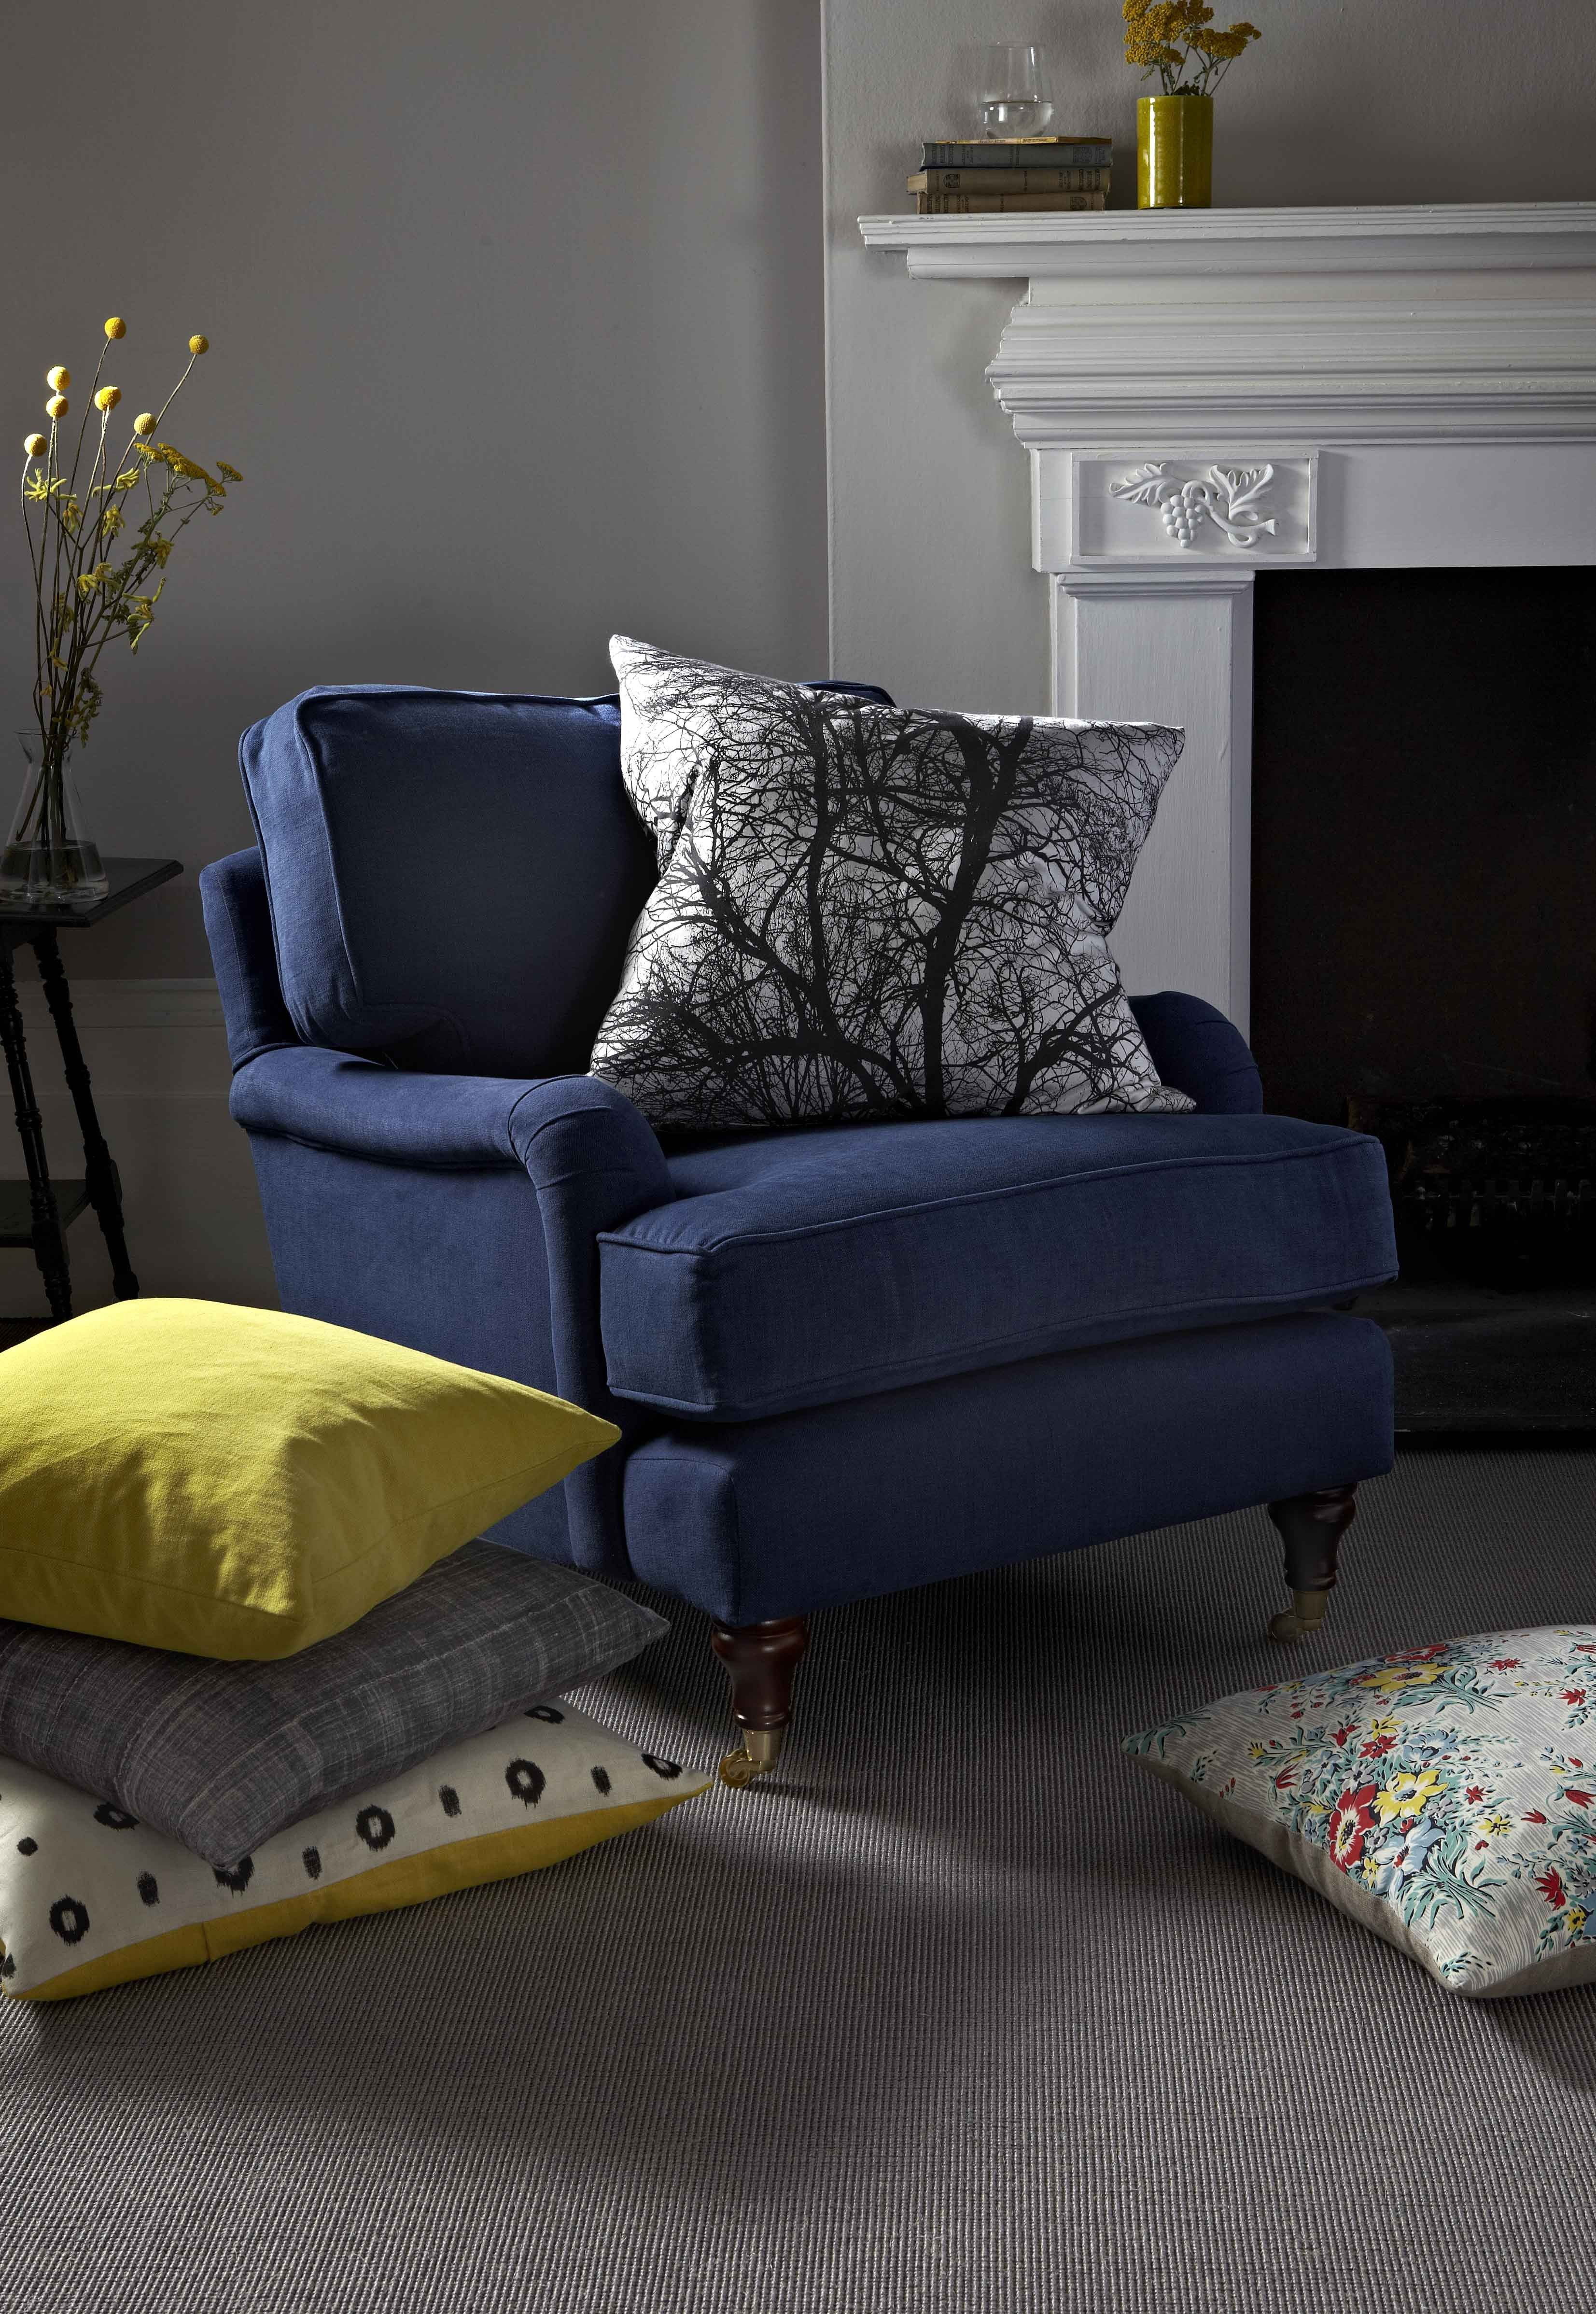 The Sofa.com English Rolled Arm Bluebell Armchair In Midnight Blue Brushed  Linen Cotton.